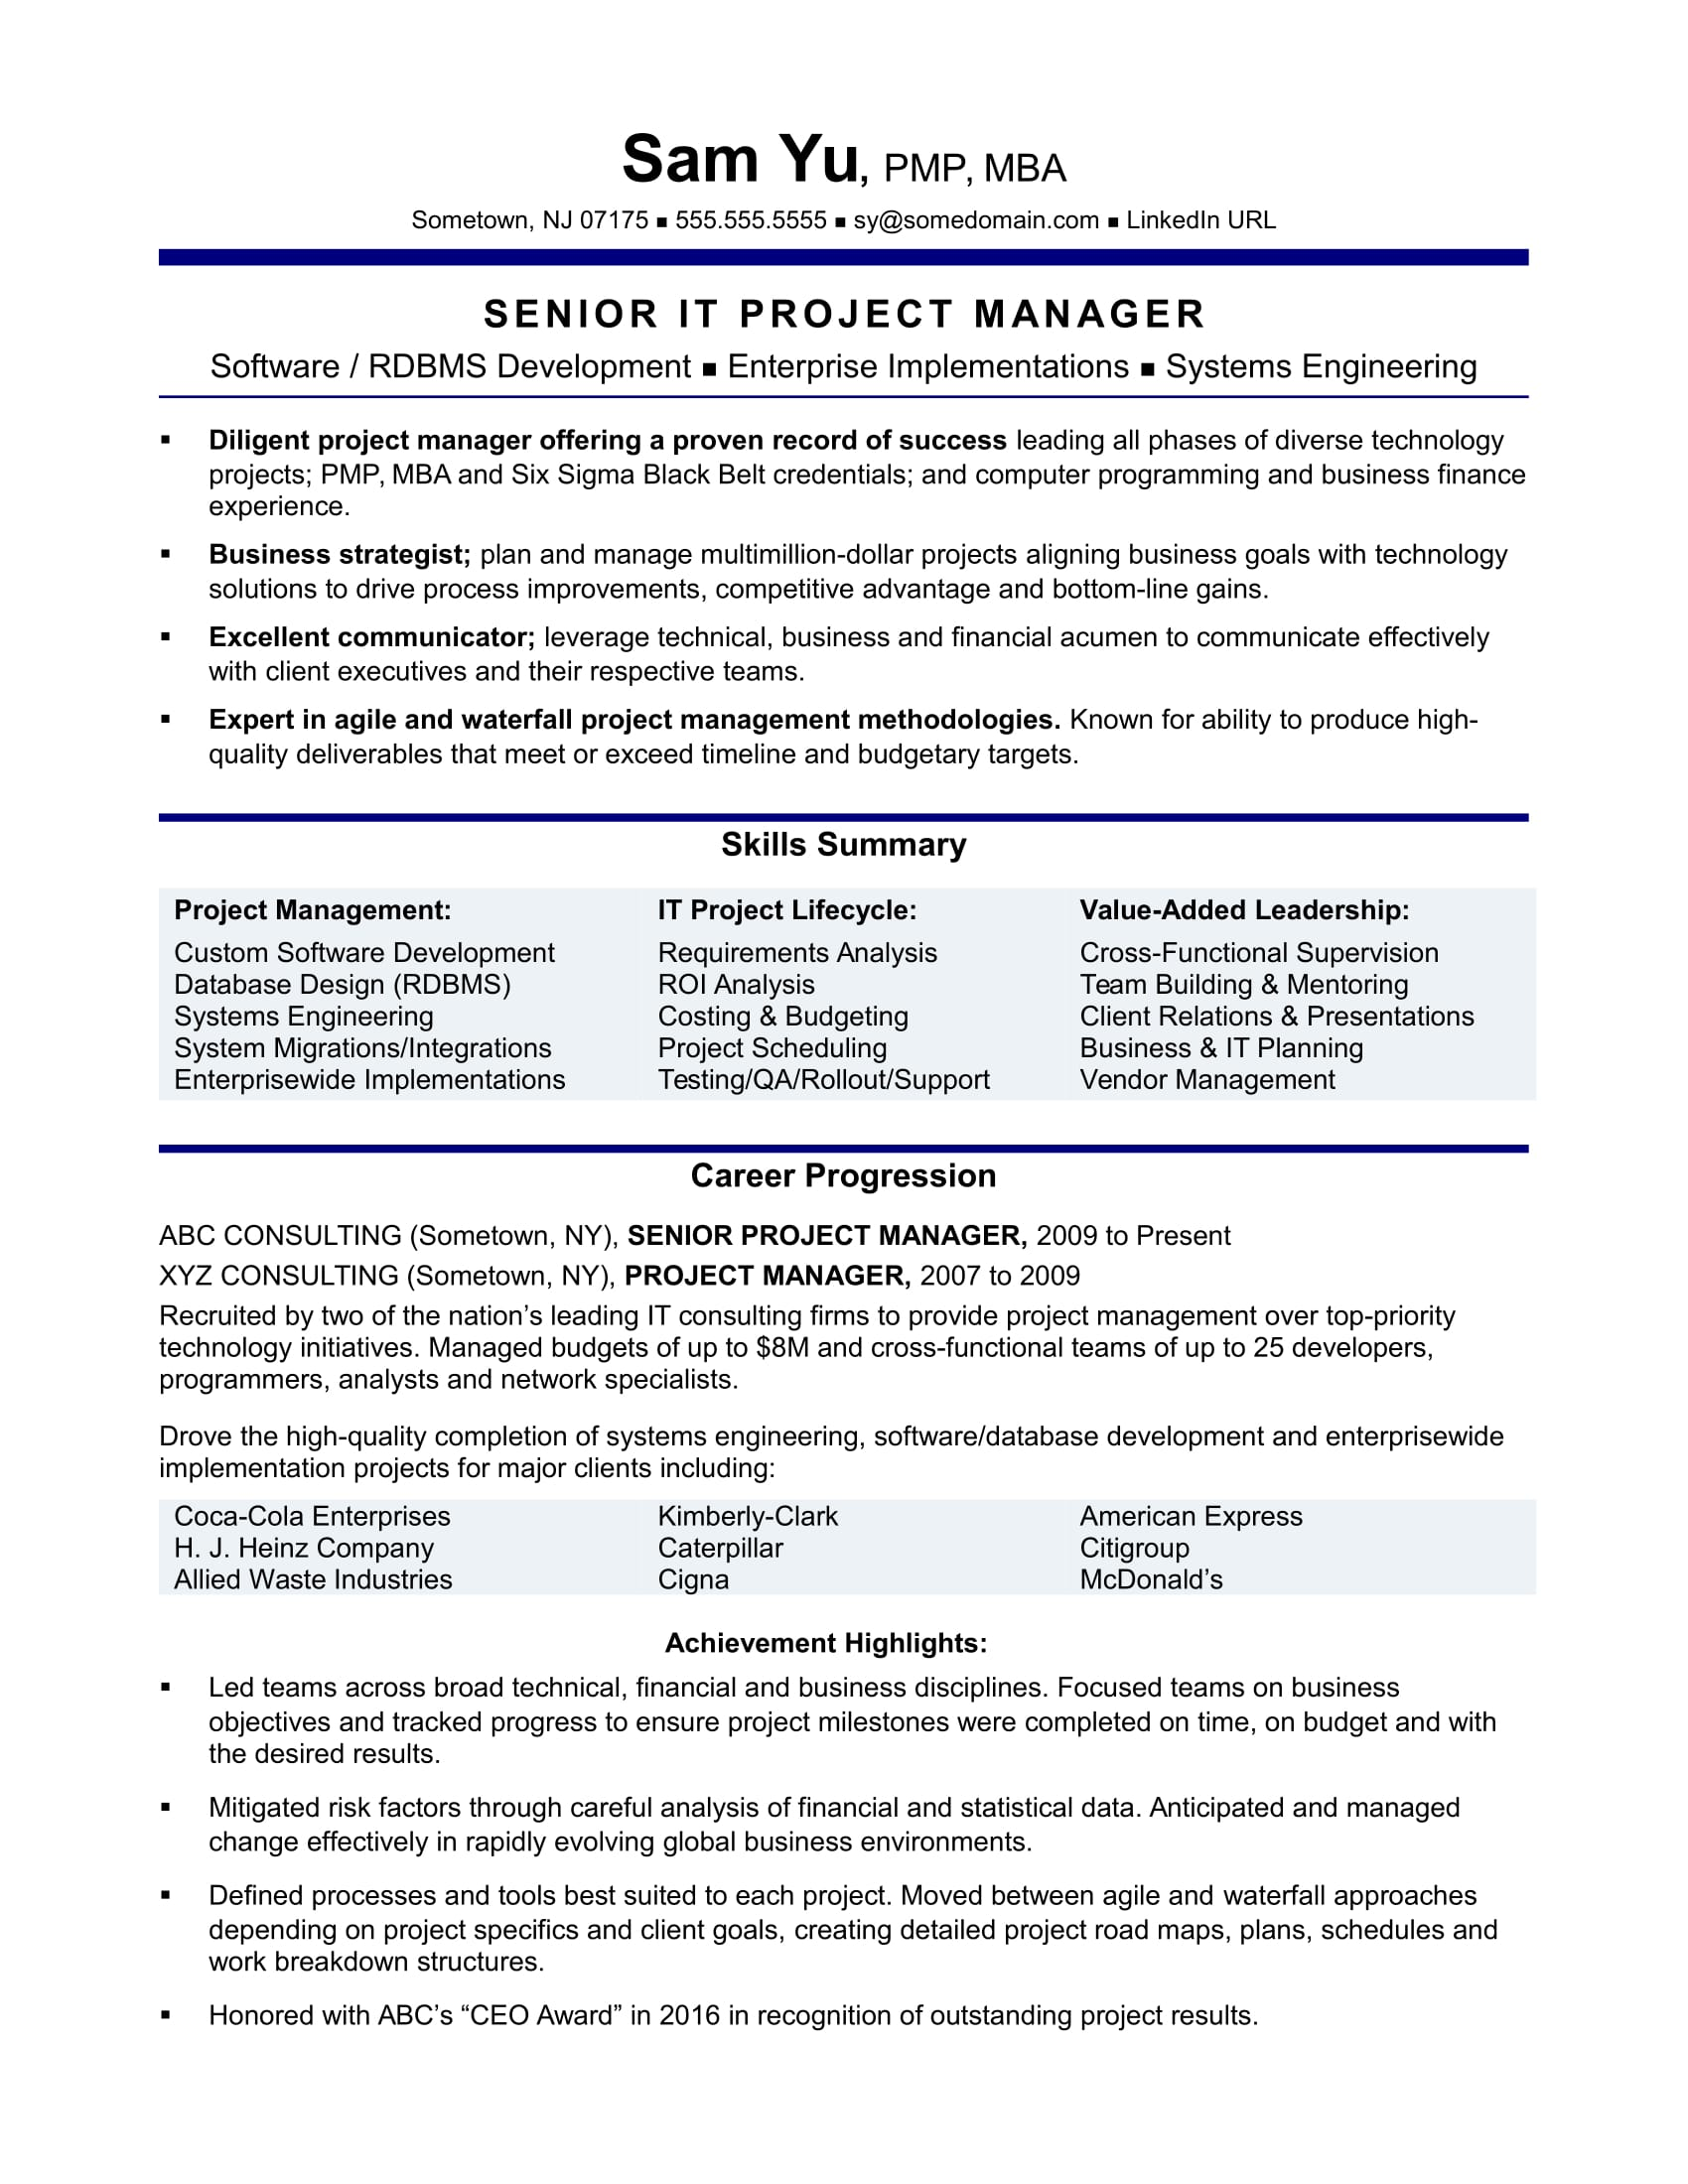 Experienced IT Project Manager Resume Sample  Monster Com Resume